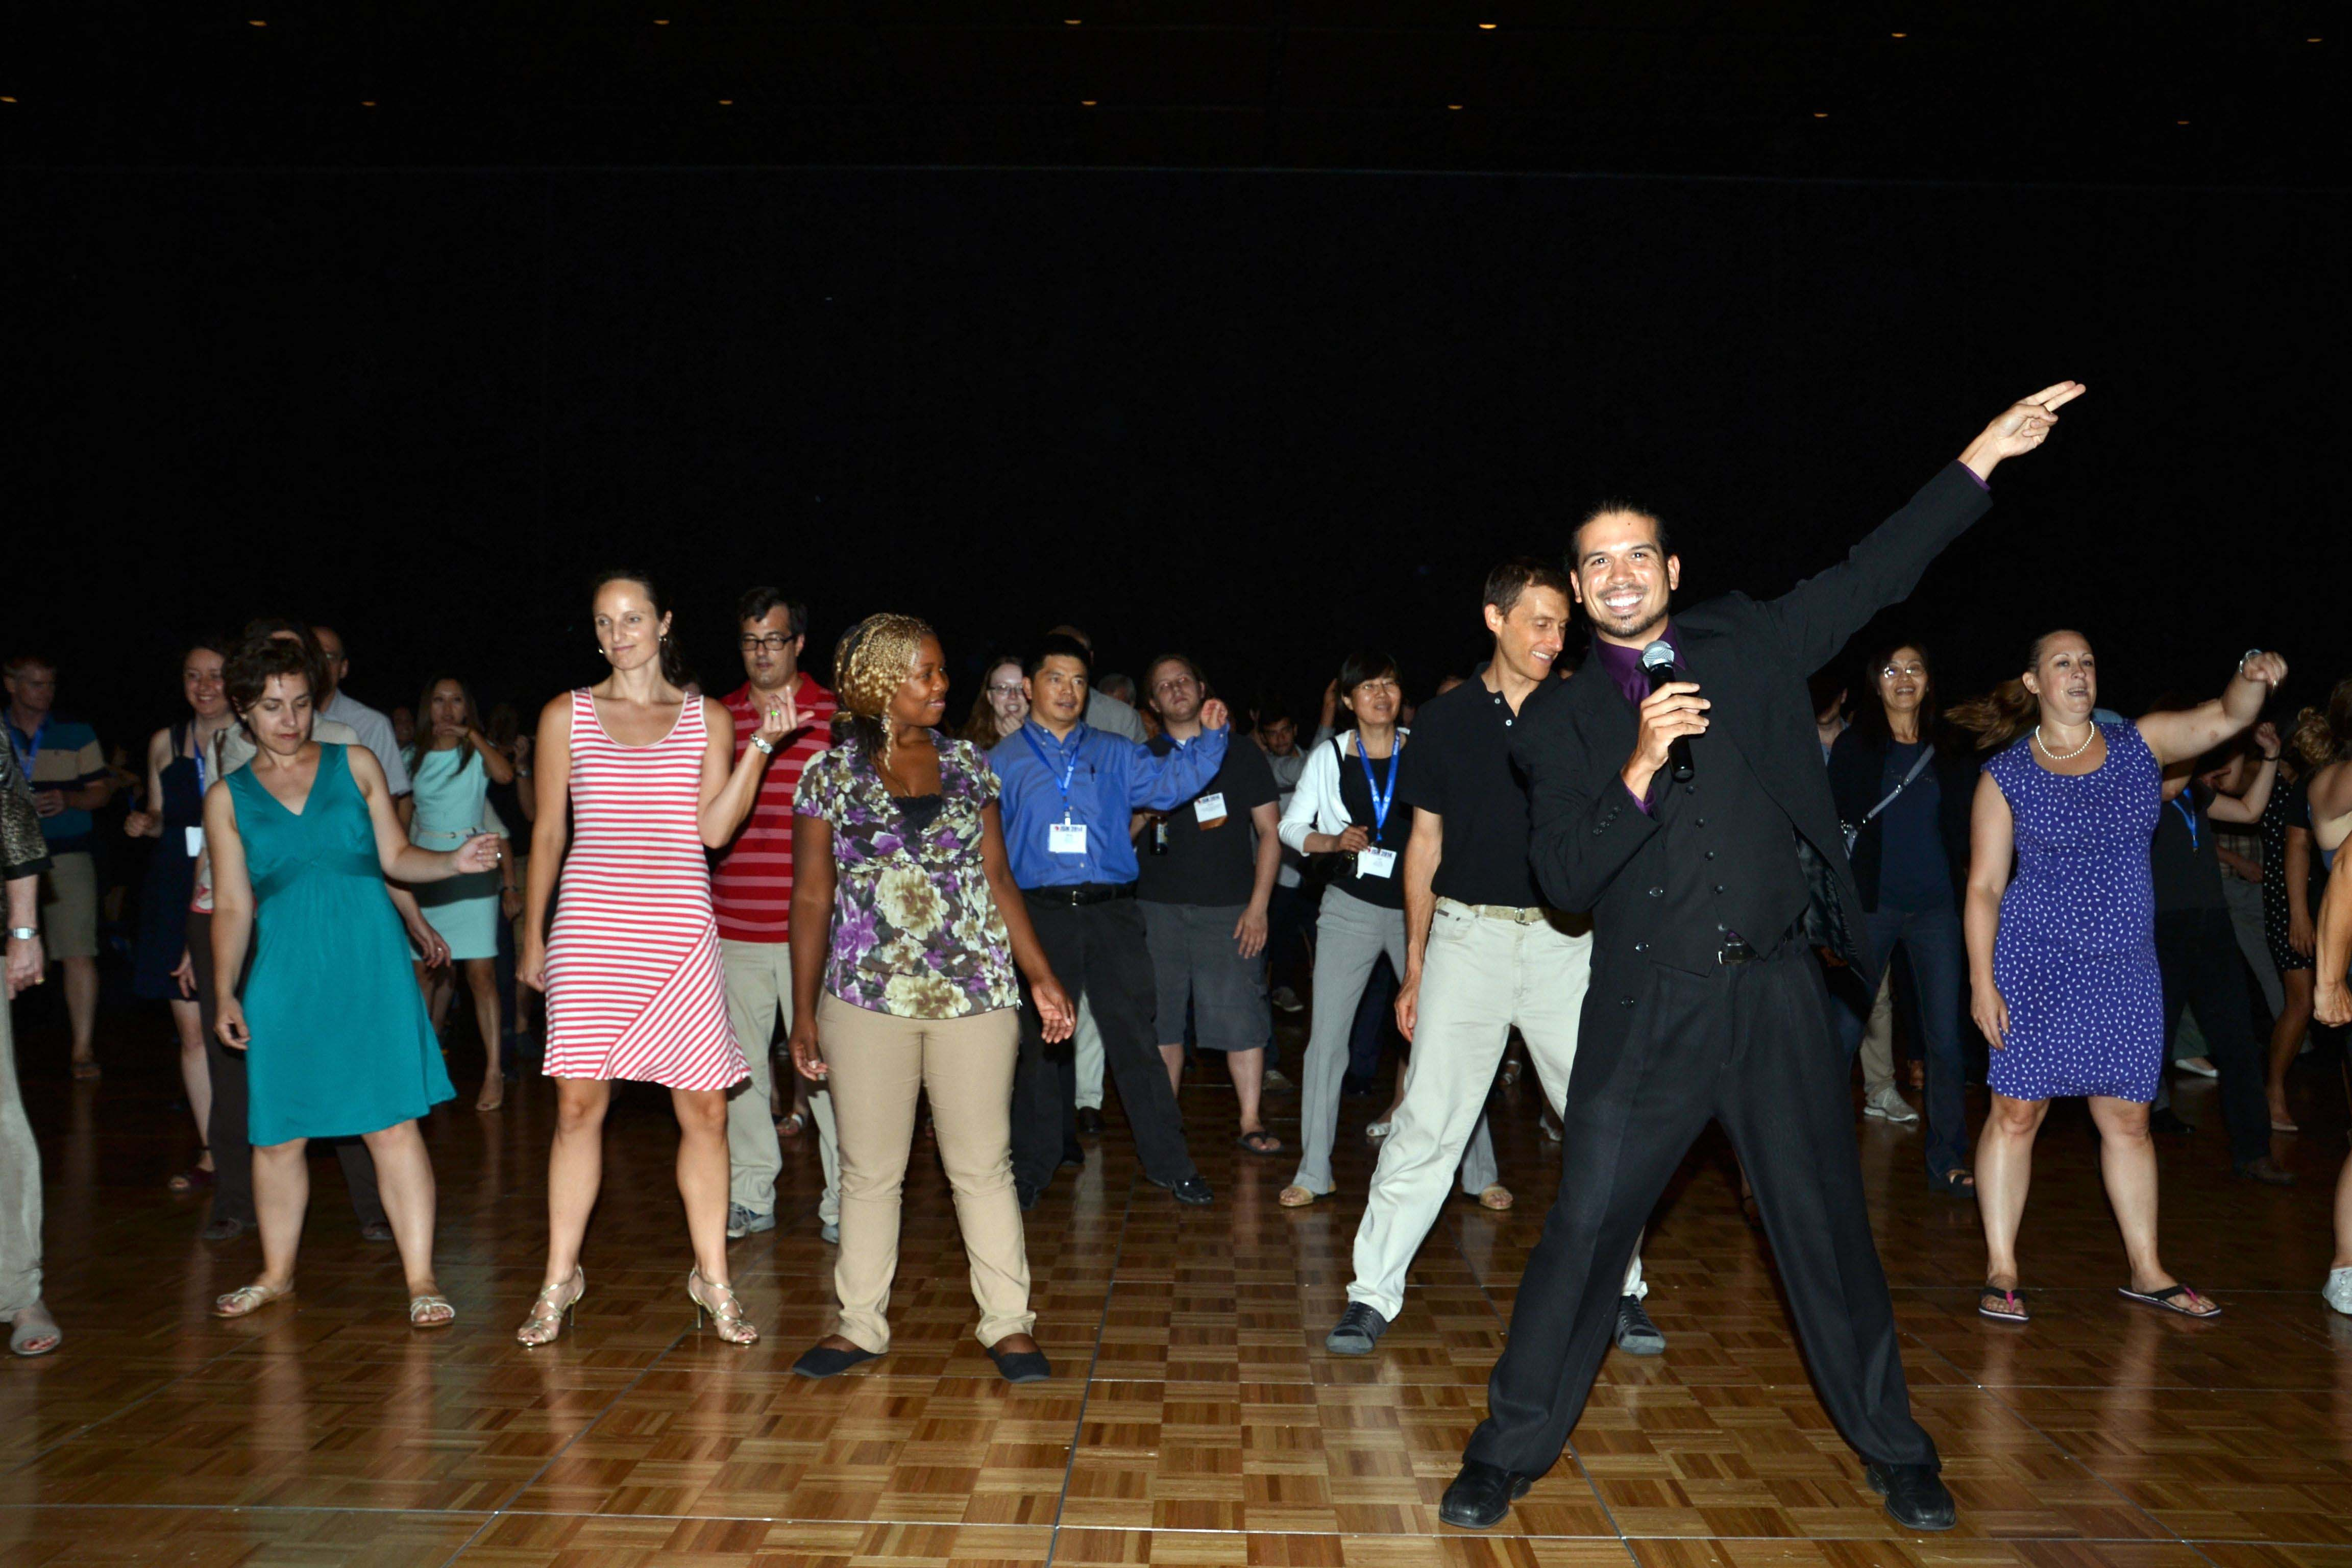 DJ El Rey (Robert Greel) keeps things going on the dance floor during the Dance Party and Lounge